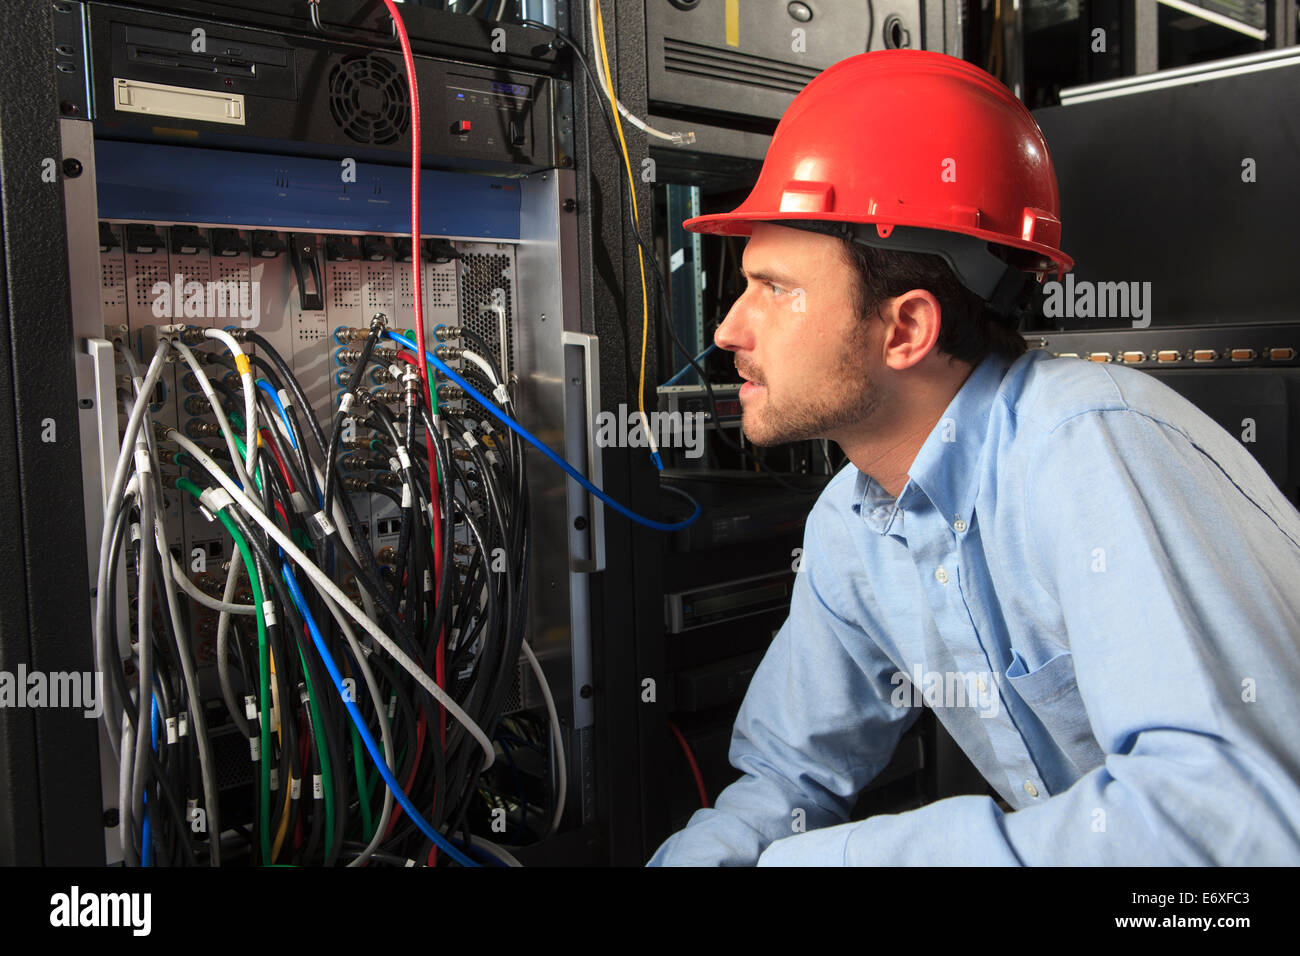 Patch Panel Stock Photos Images Page 2 Alamy Structured Wiring Cabinet Network Engineer Examining System Configuration At Image